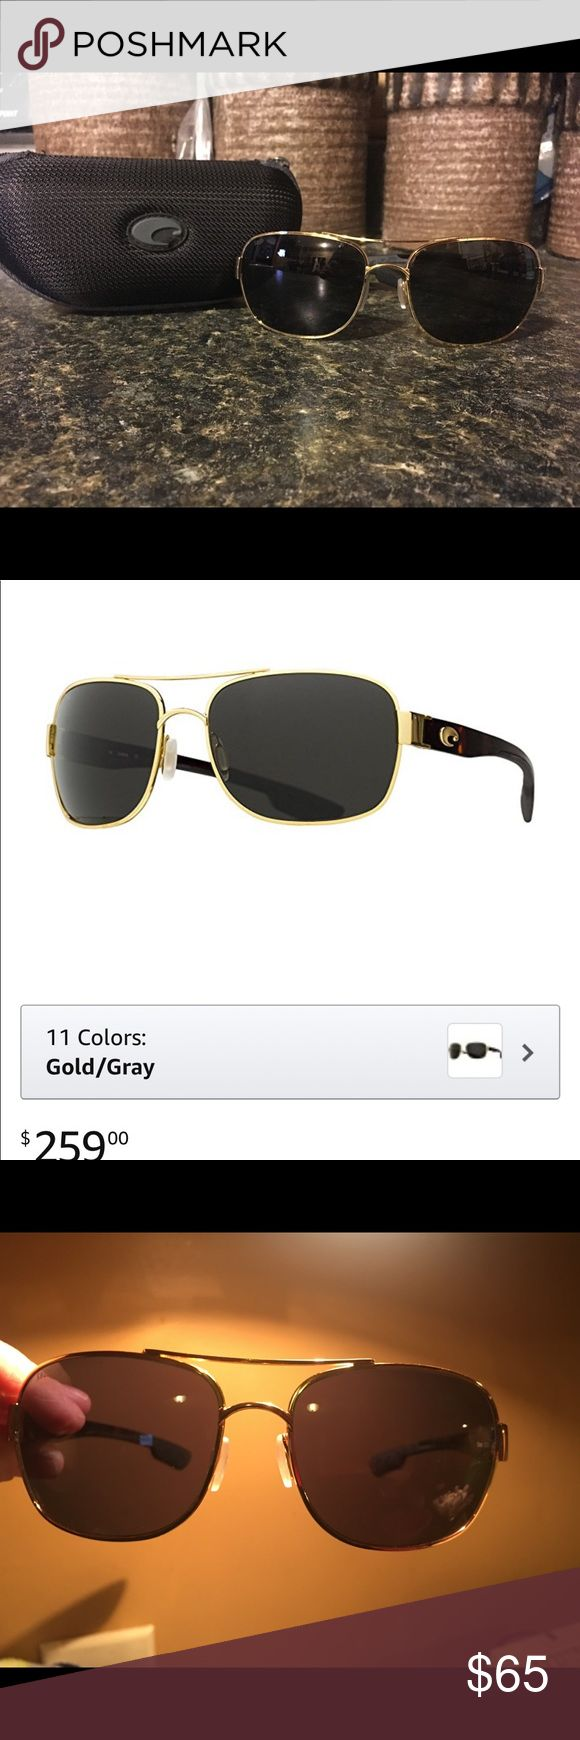 Costa Del Mar Coco Sunglasses Gold and Tortoise Beautiful and stylish sunglasses. Very much so authentic! I purchased myself. Included is a picture of the New on Amazon. Polarized. They do have some surface scratches from my previous use. I tried to take the best pictures so that you can tell exactly where scratches are ( actually harder than you would think). Lots and lots of wear left! Great glasses for everyday, Lake, or ocean wear. Gold with tortoise. Nose pieces are still in great…